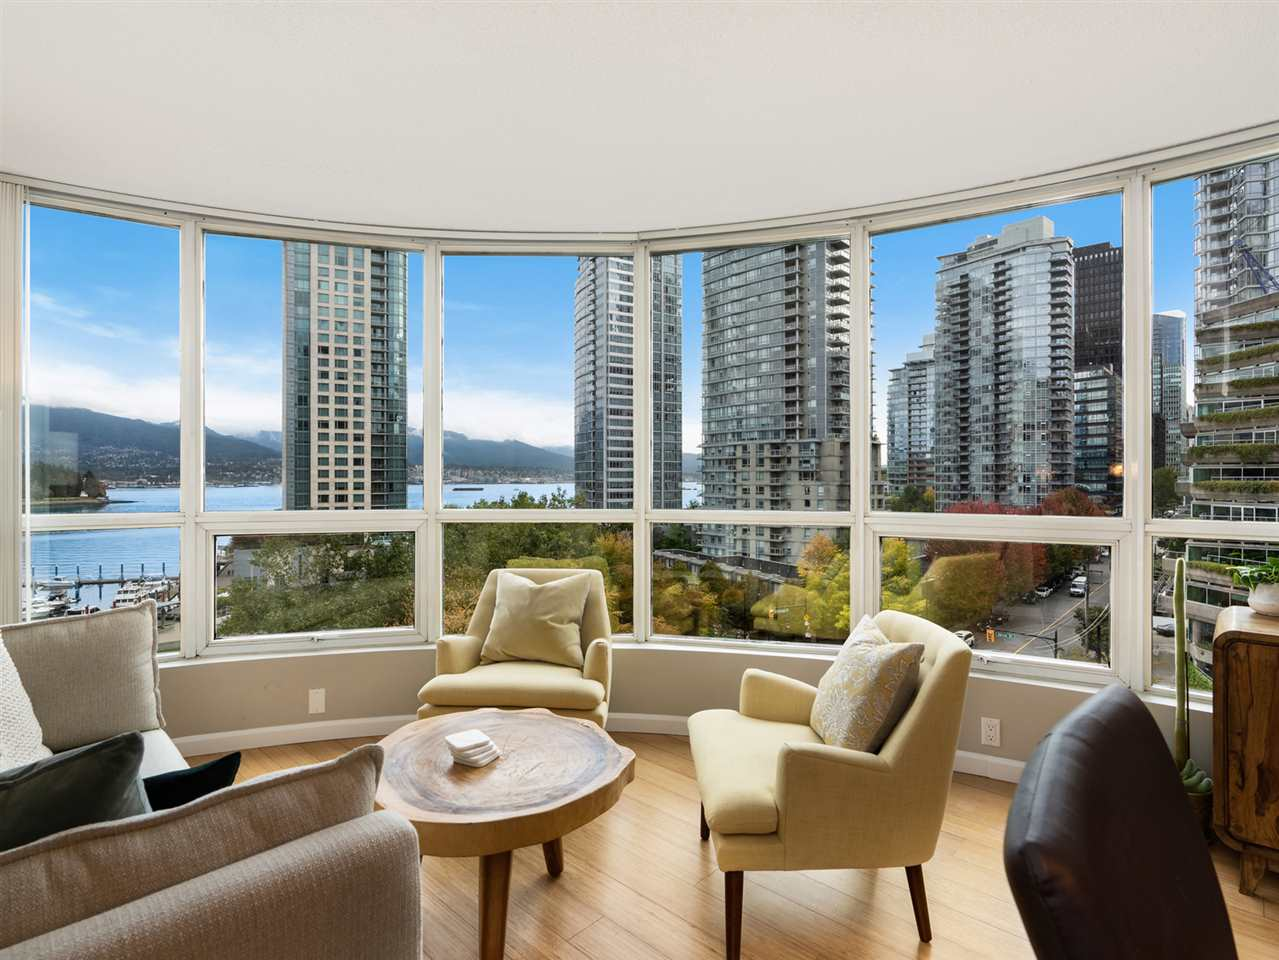 702 555 JERVIS STREET - Coal Harbour Apartment/Condo for sale, 2 Bedrooms (R2520893) - #1